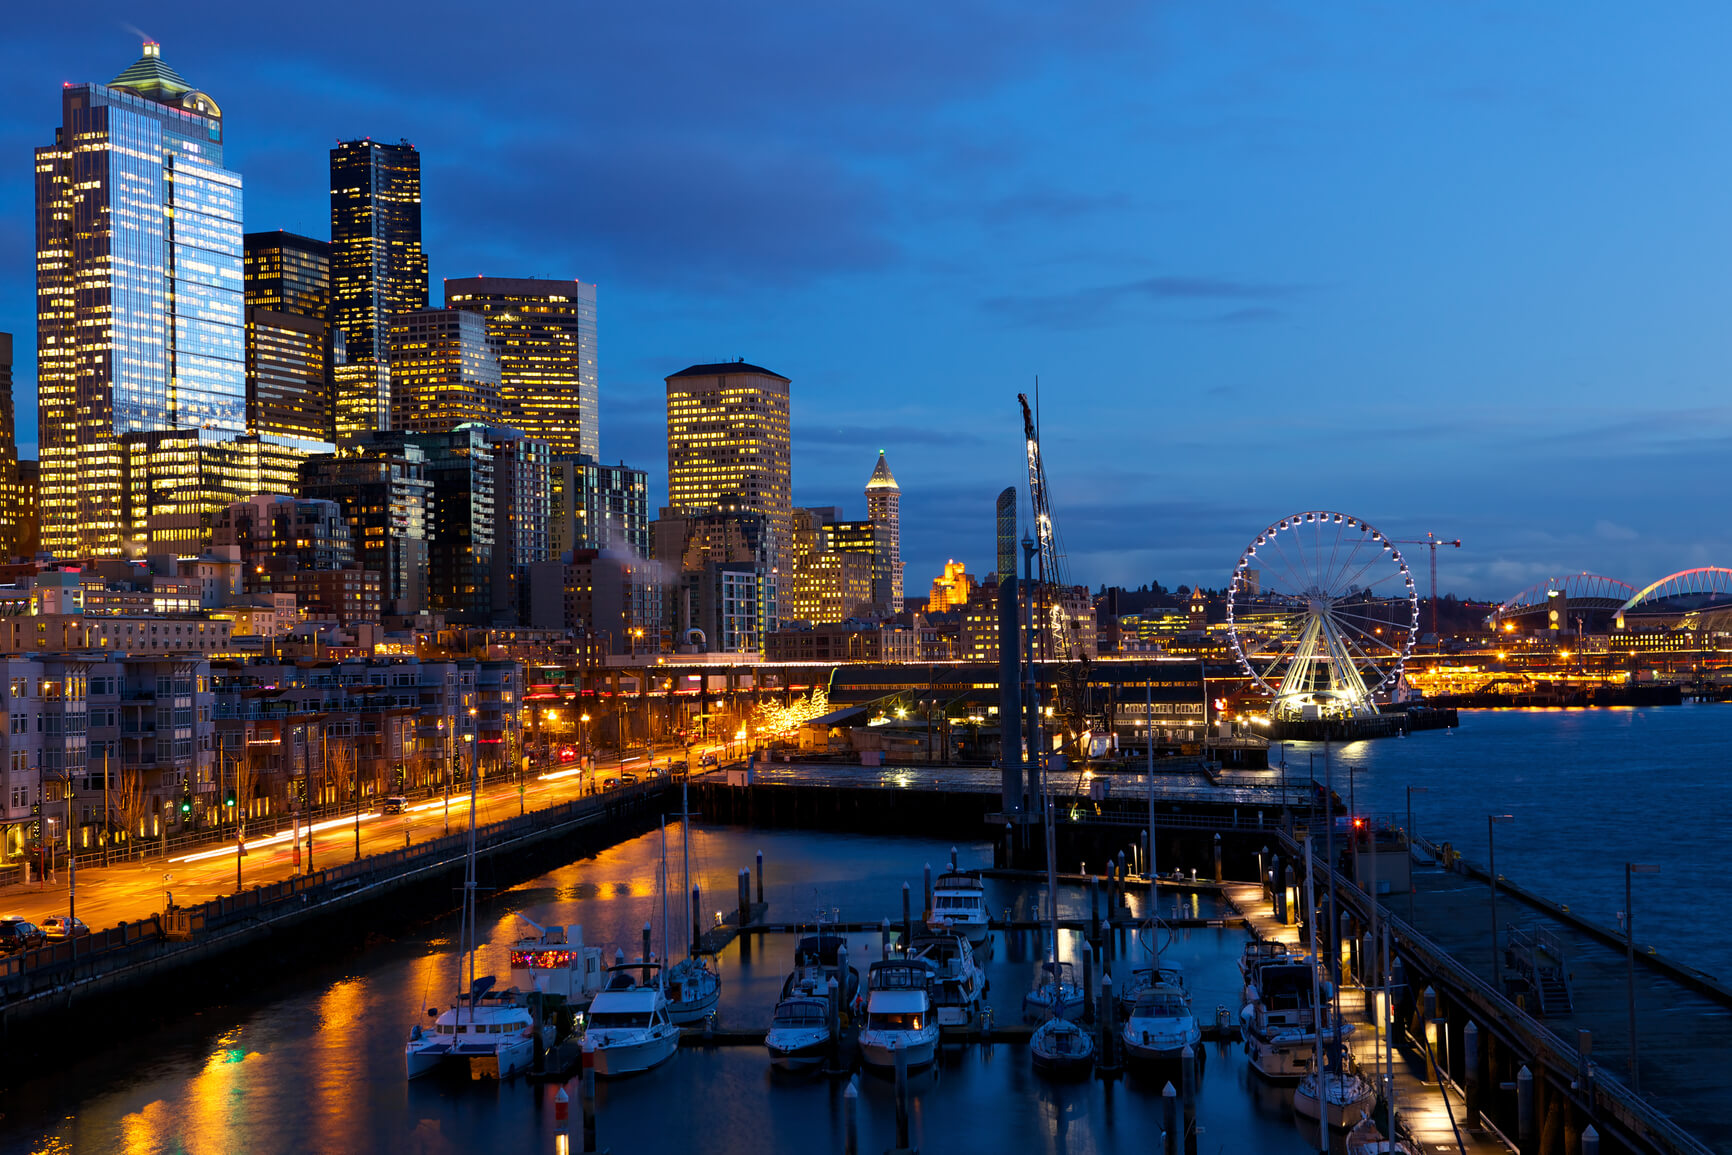 Non-stop from Washington DC to Seattle (& vice versa) for only $148 roundtrip (Oct-Dec dates)